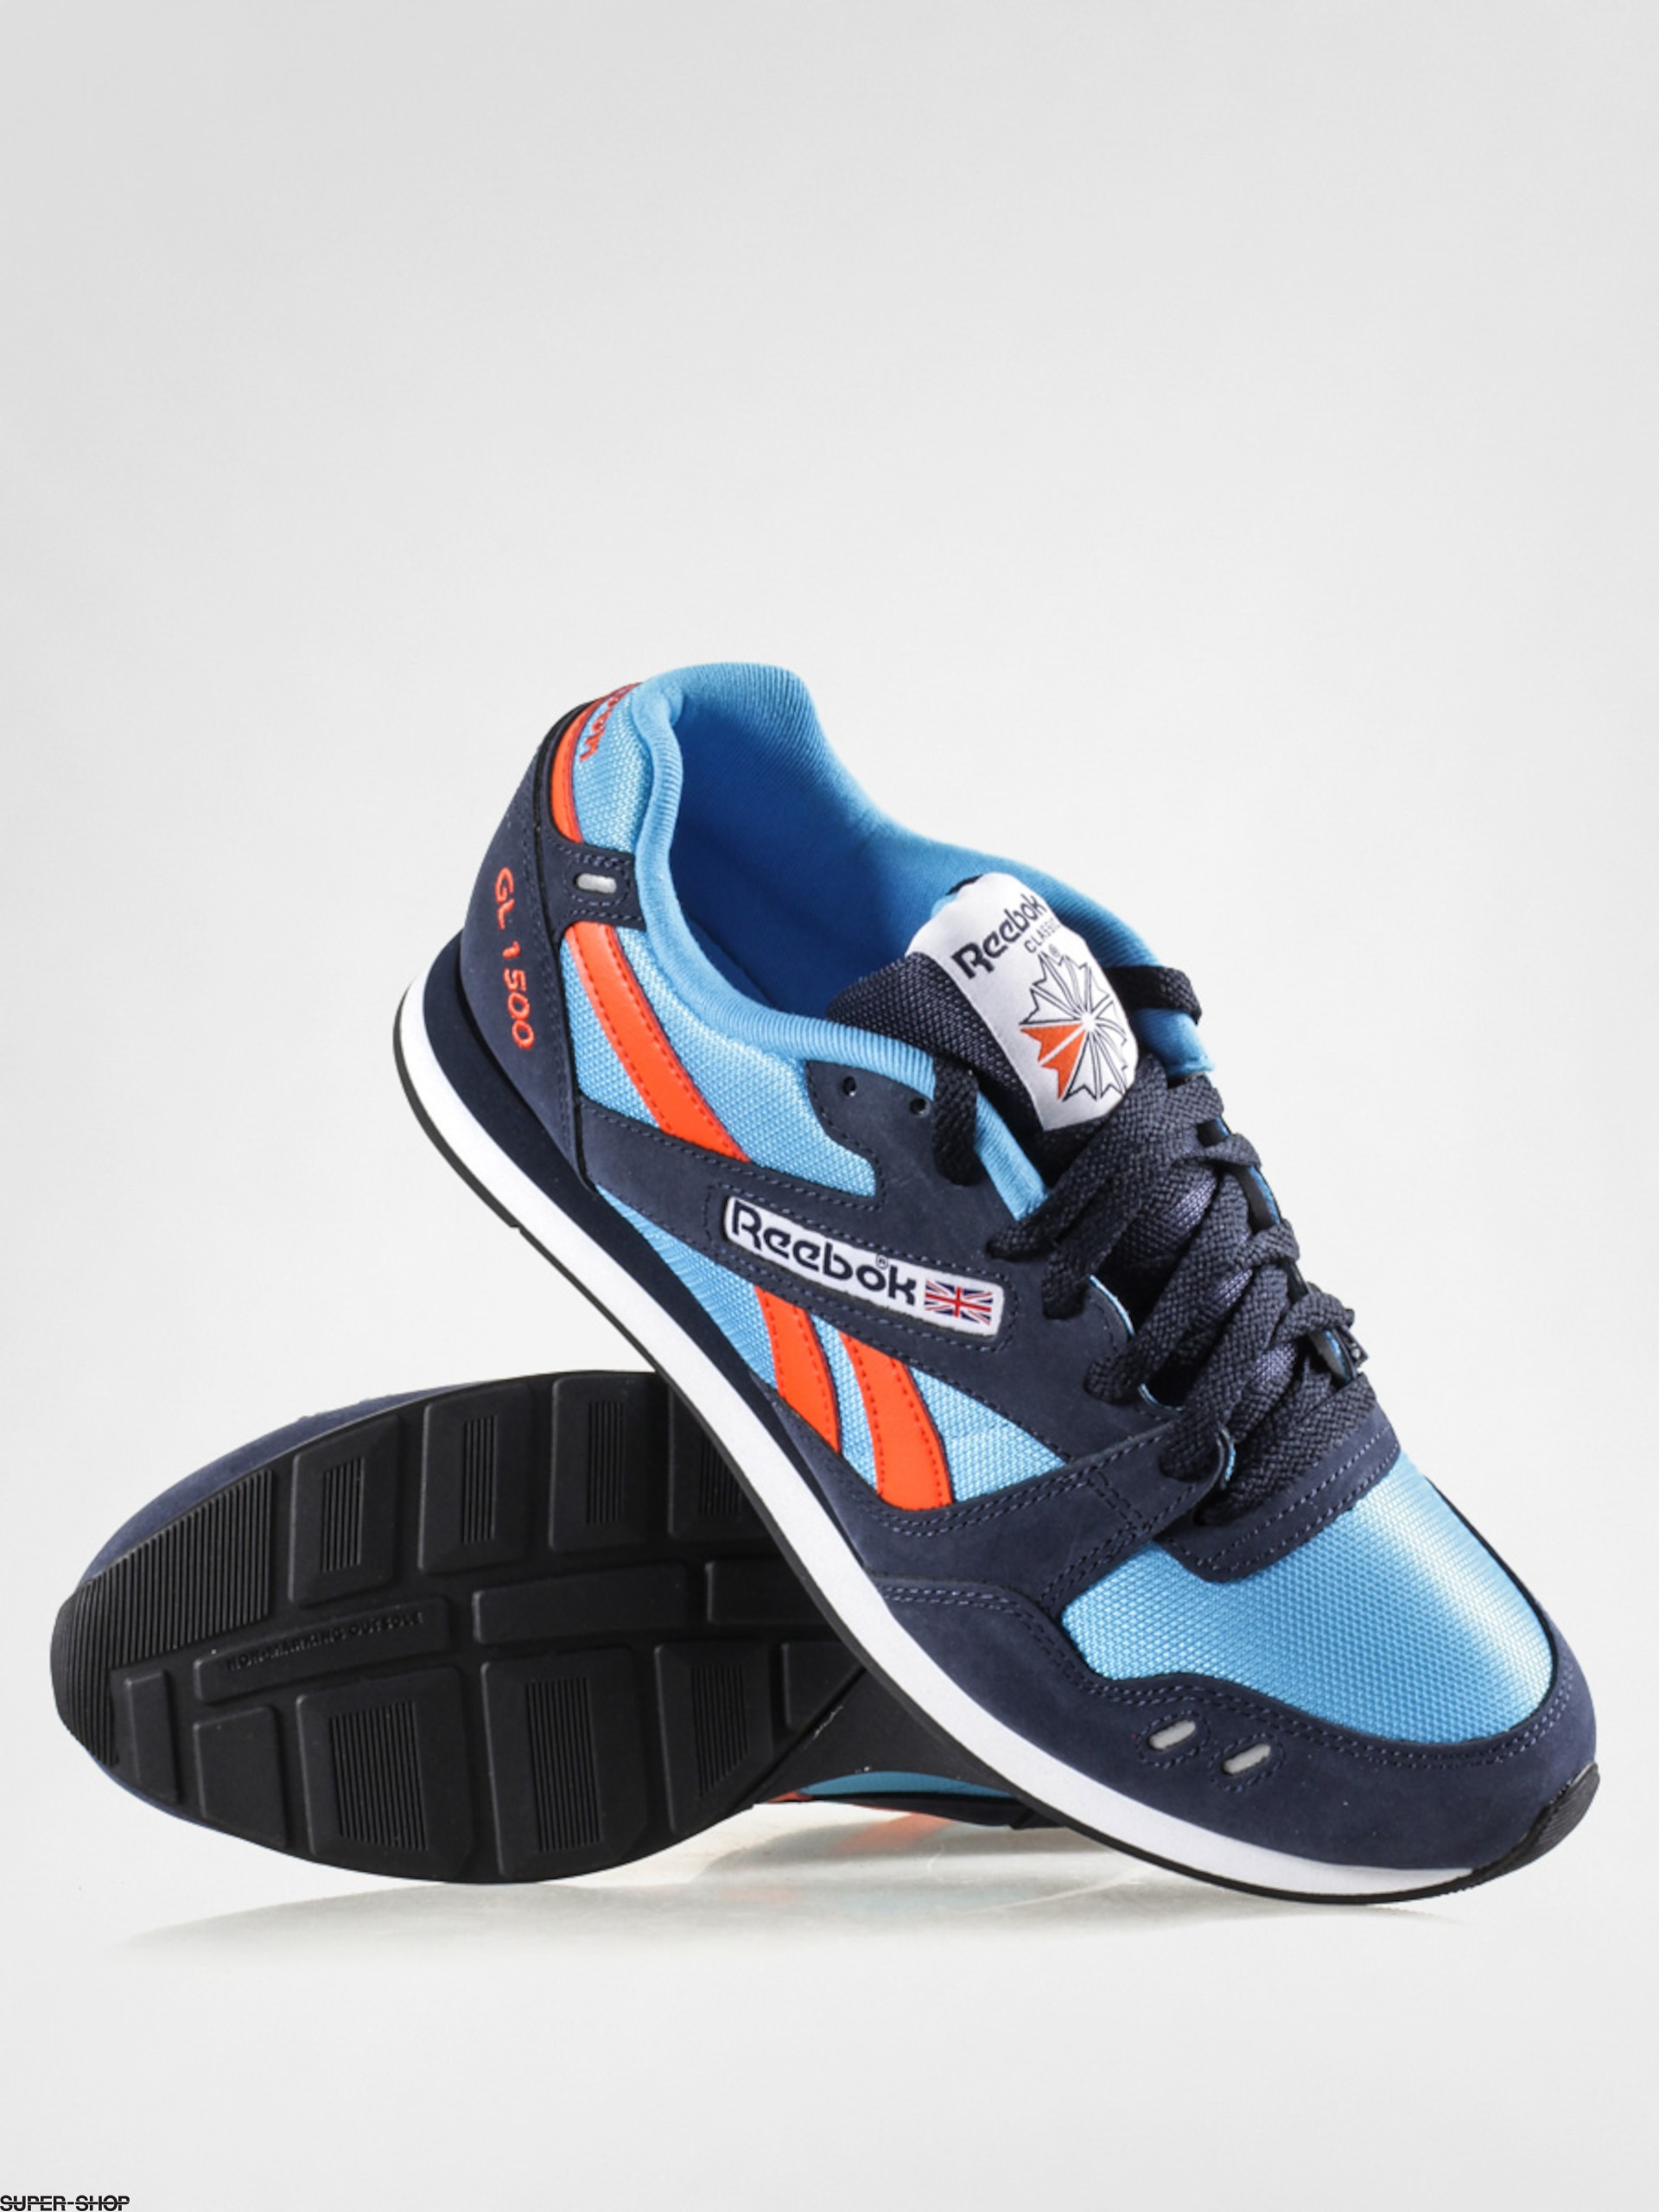 Selling - reebok shoes 1500 - OFF 66